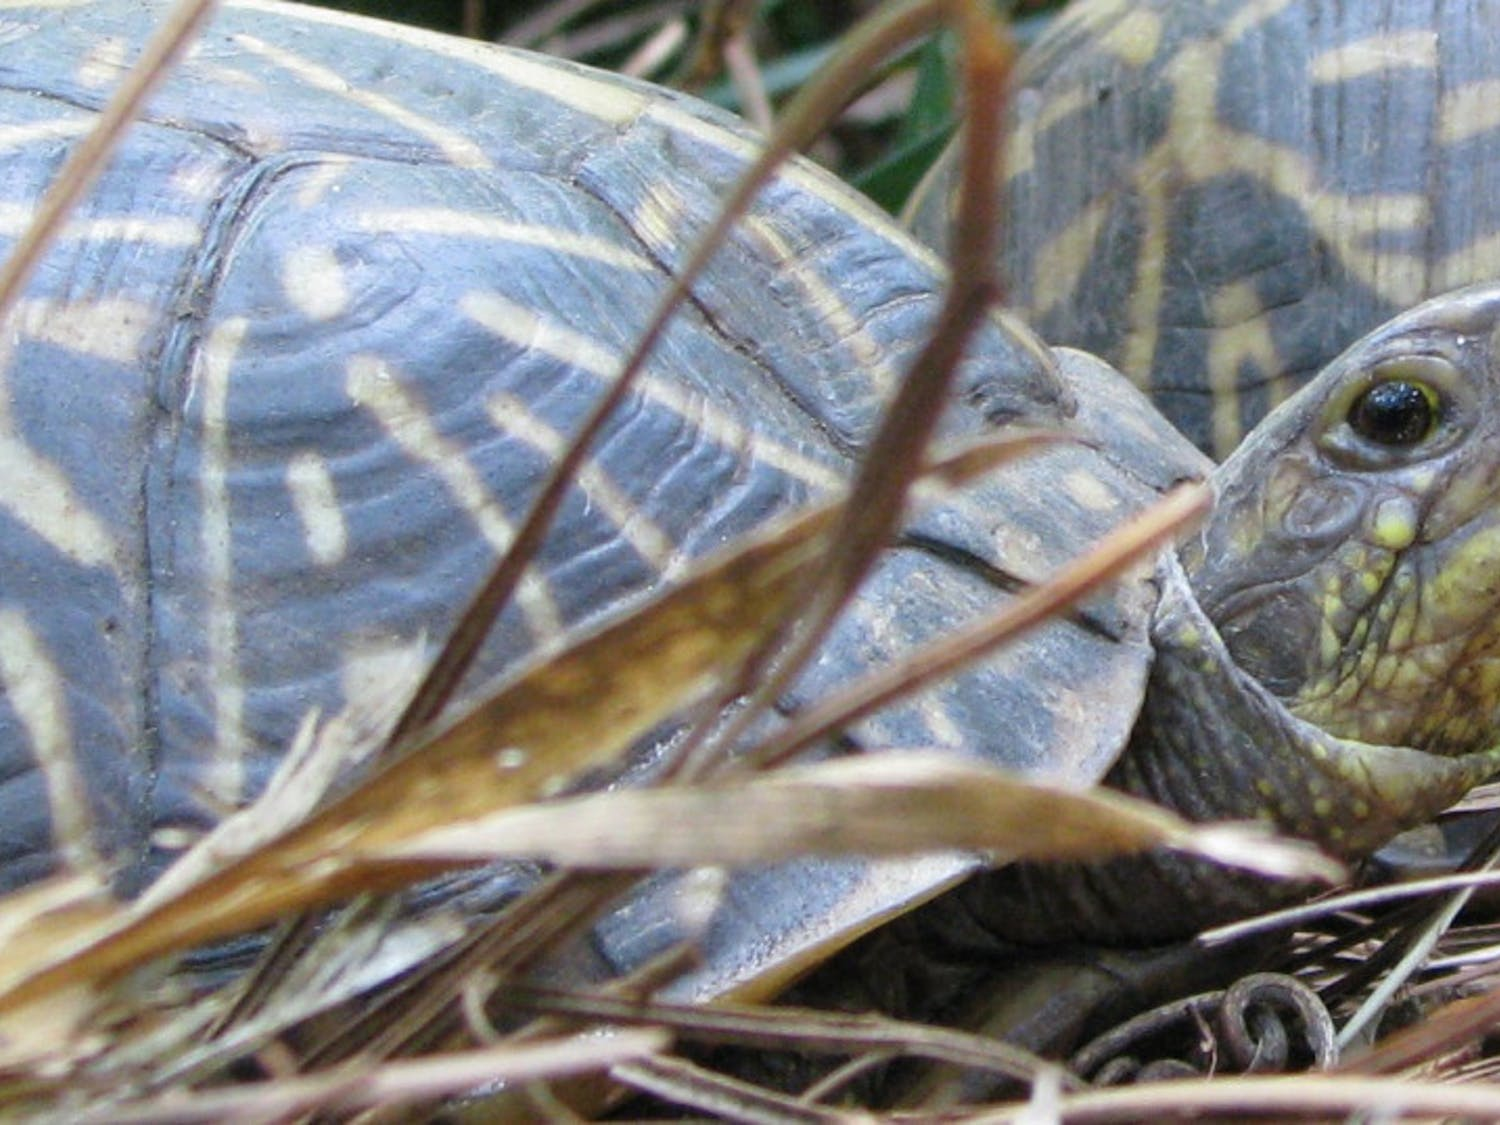 David Beckham, a box turtle, is one of four animals still missing after 11 were stolen from the Santa Fe College Teaching Zoo. Another box turtle and two gopher tortoises are also still missing.